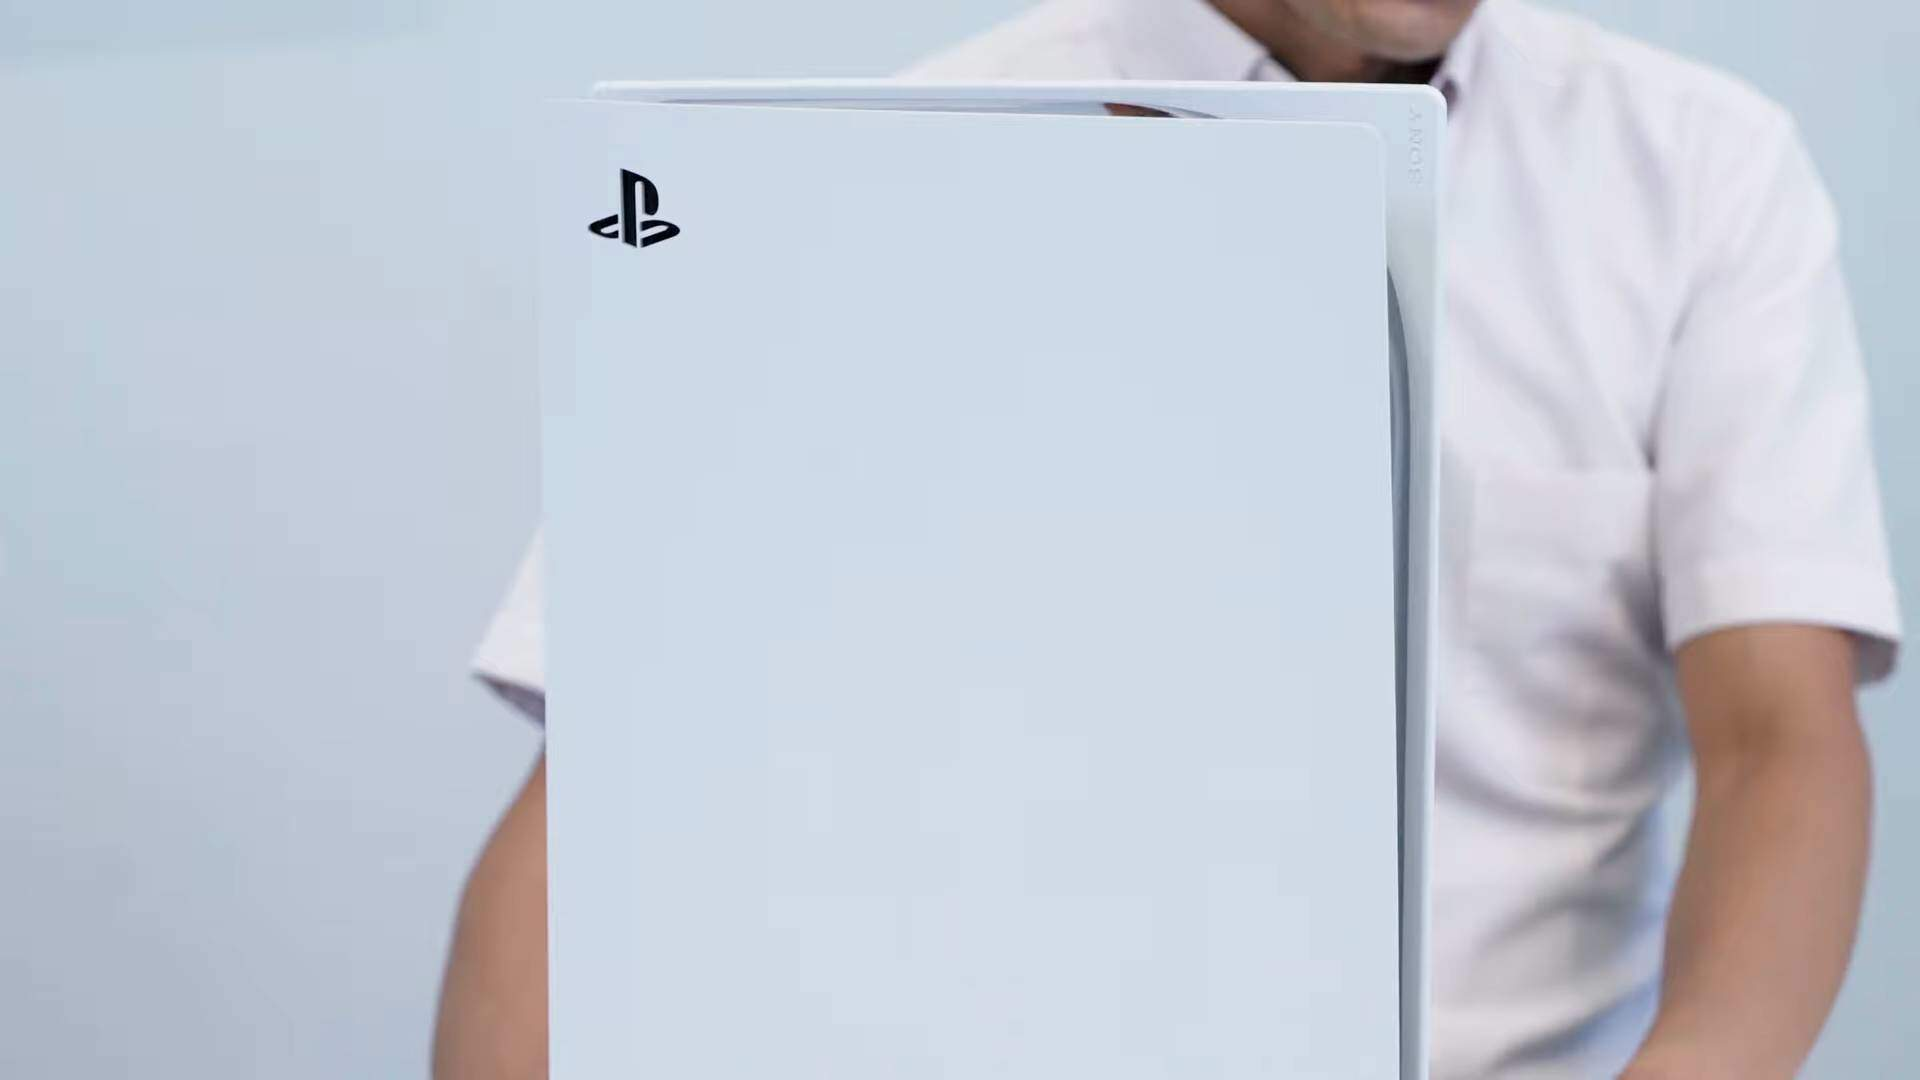 Here's What's Inside the PS5, Including Where Extra Storage Goes